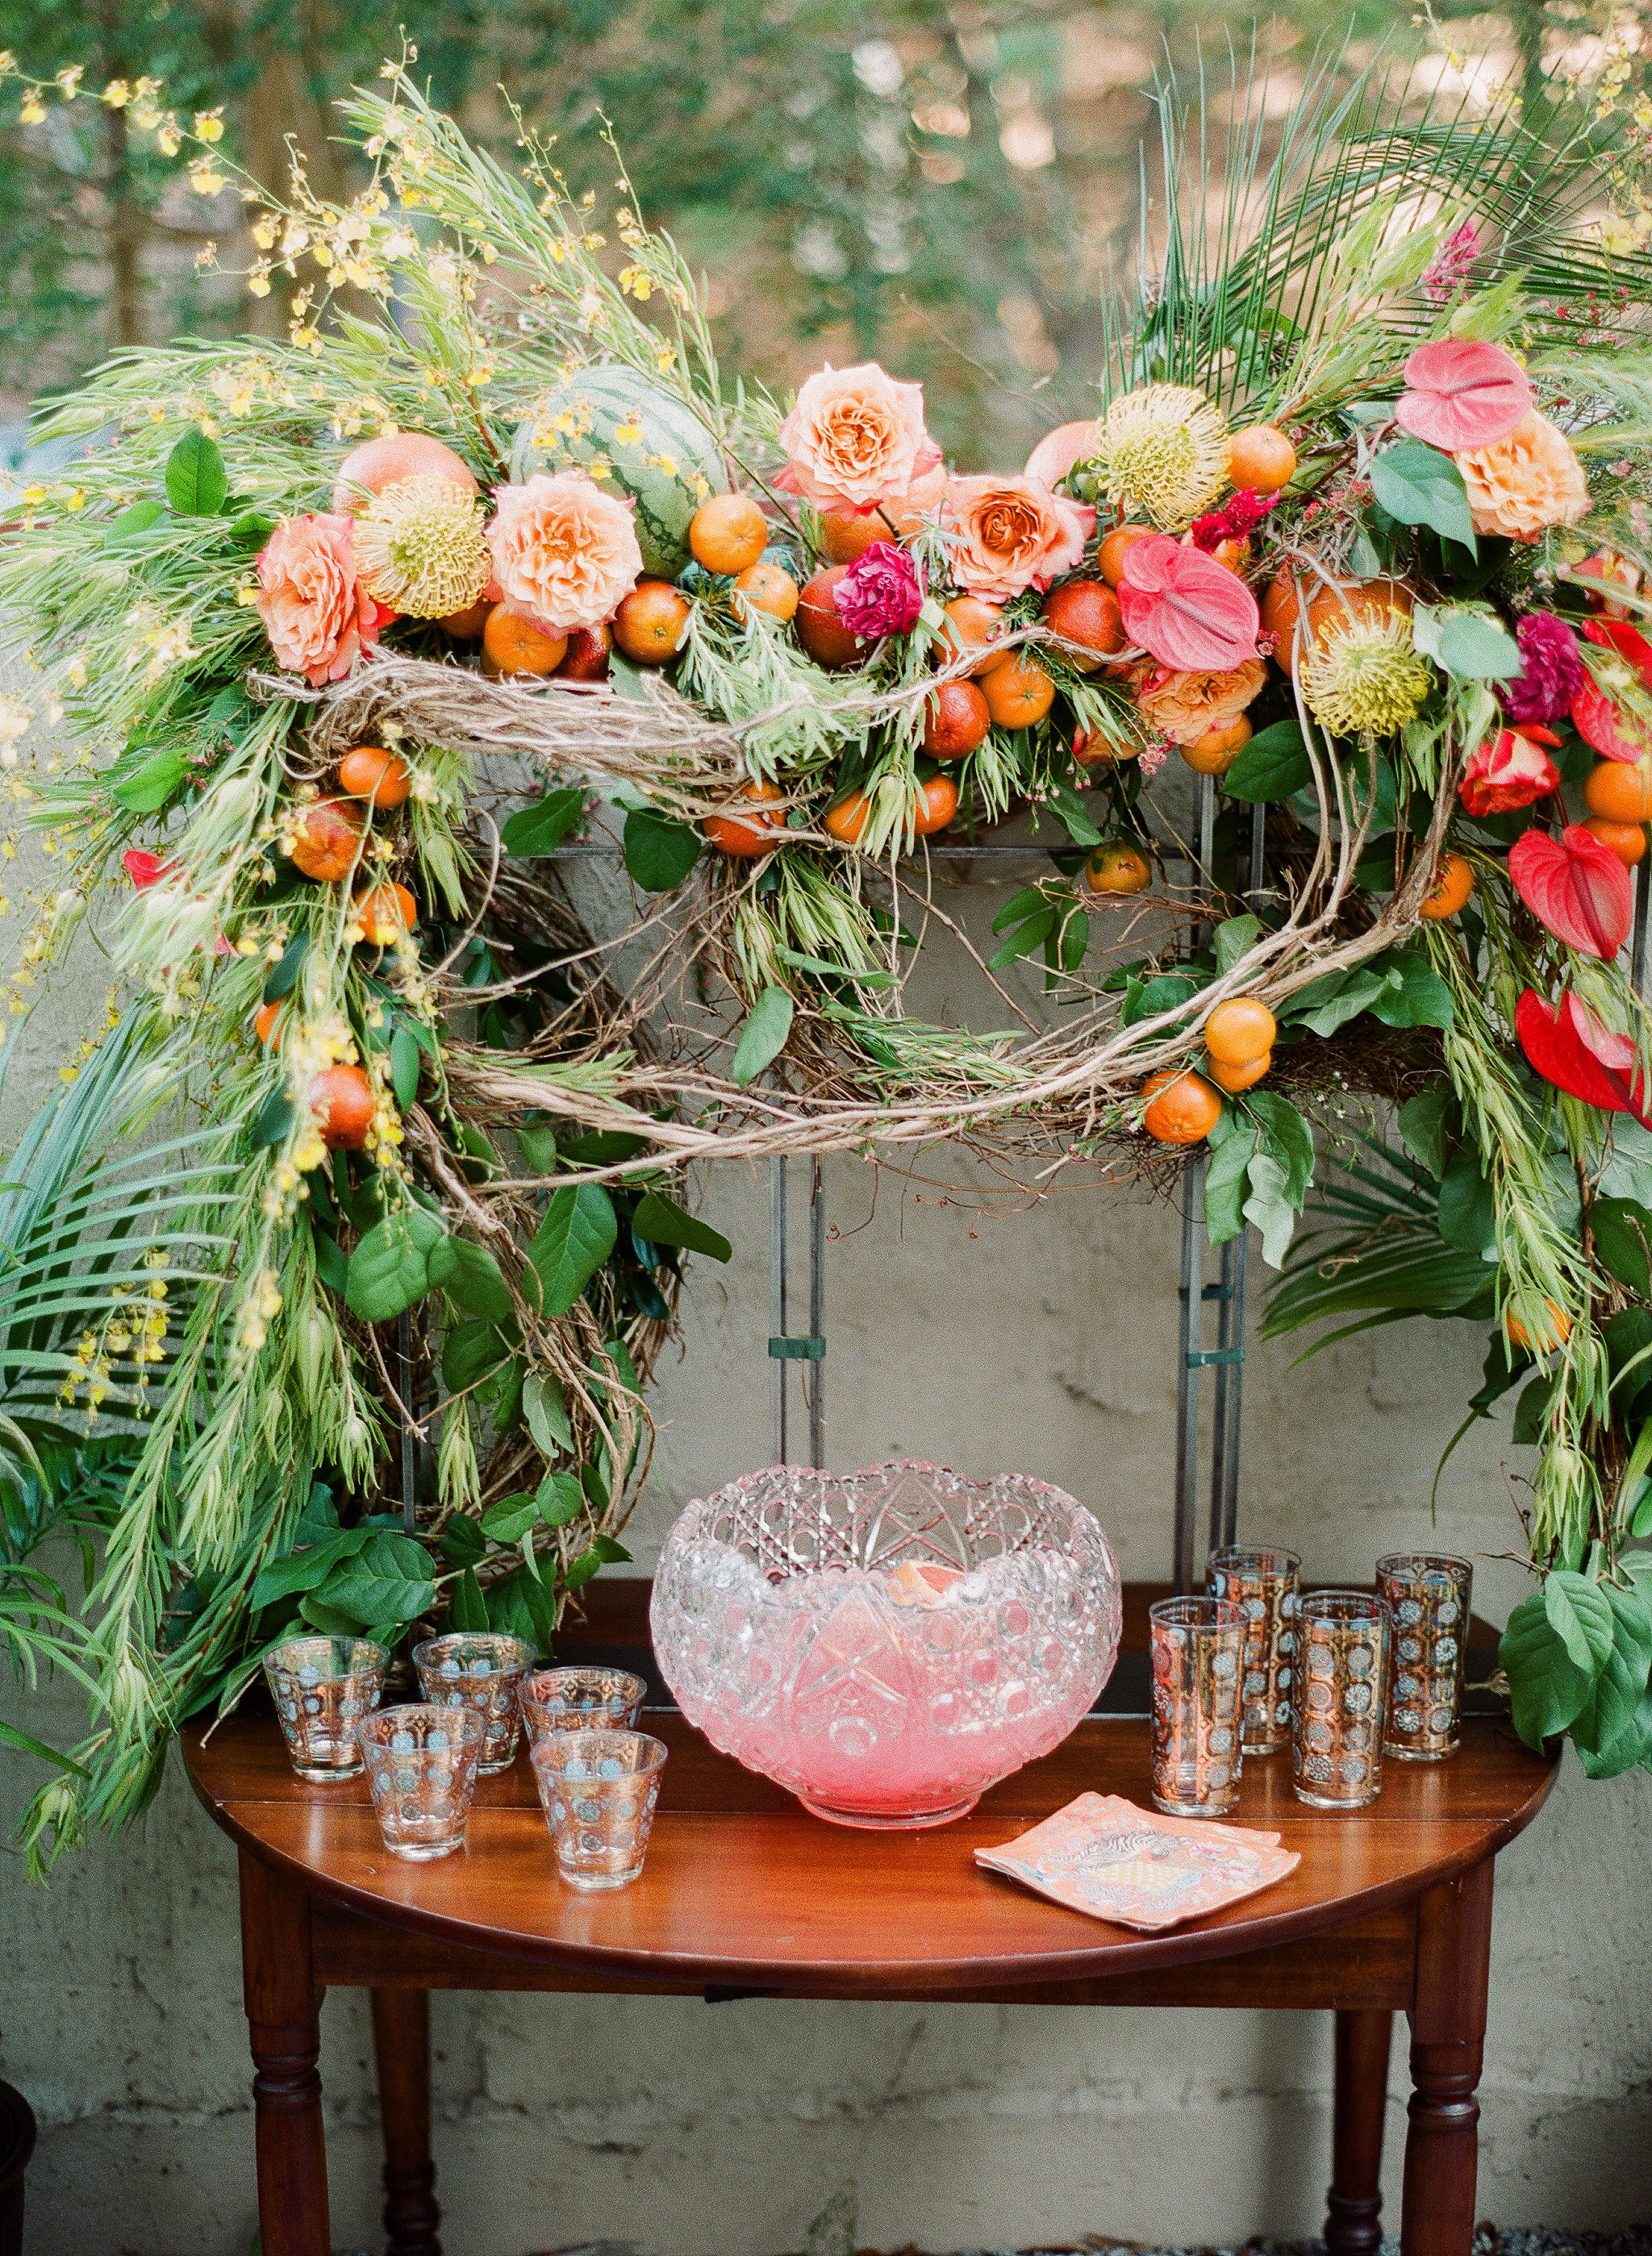 Charleston Porch Party, Events by Reagan, Dinner Party, Tropical Party, Charleston Event Planner , Fruit and Flower decor, Tropical Bar, Tropical Pink Punch, Decorative Glasses